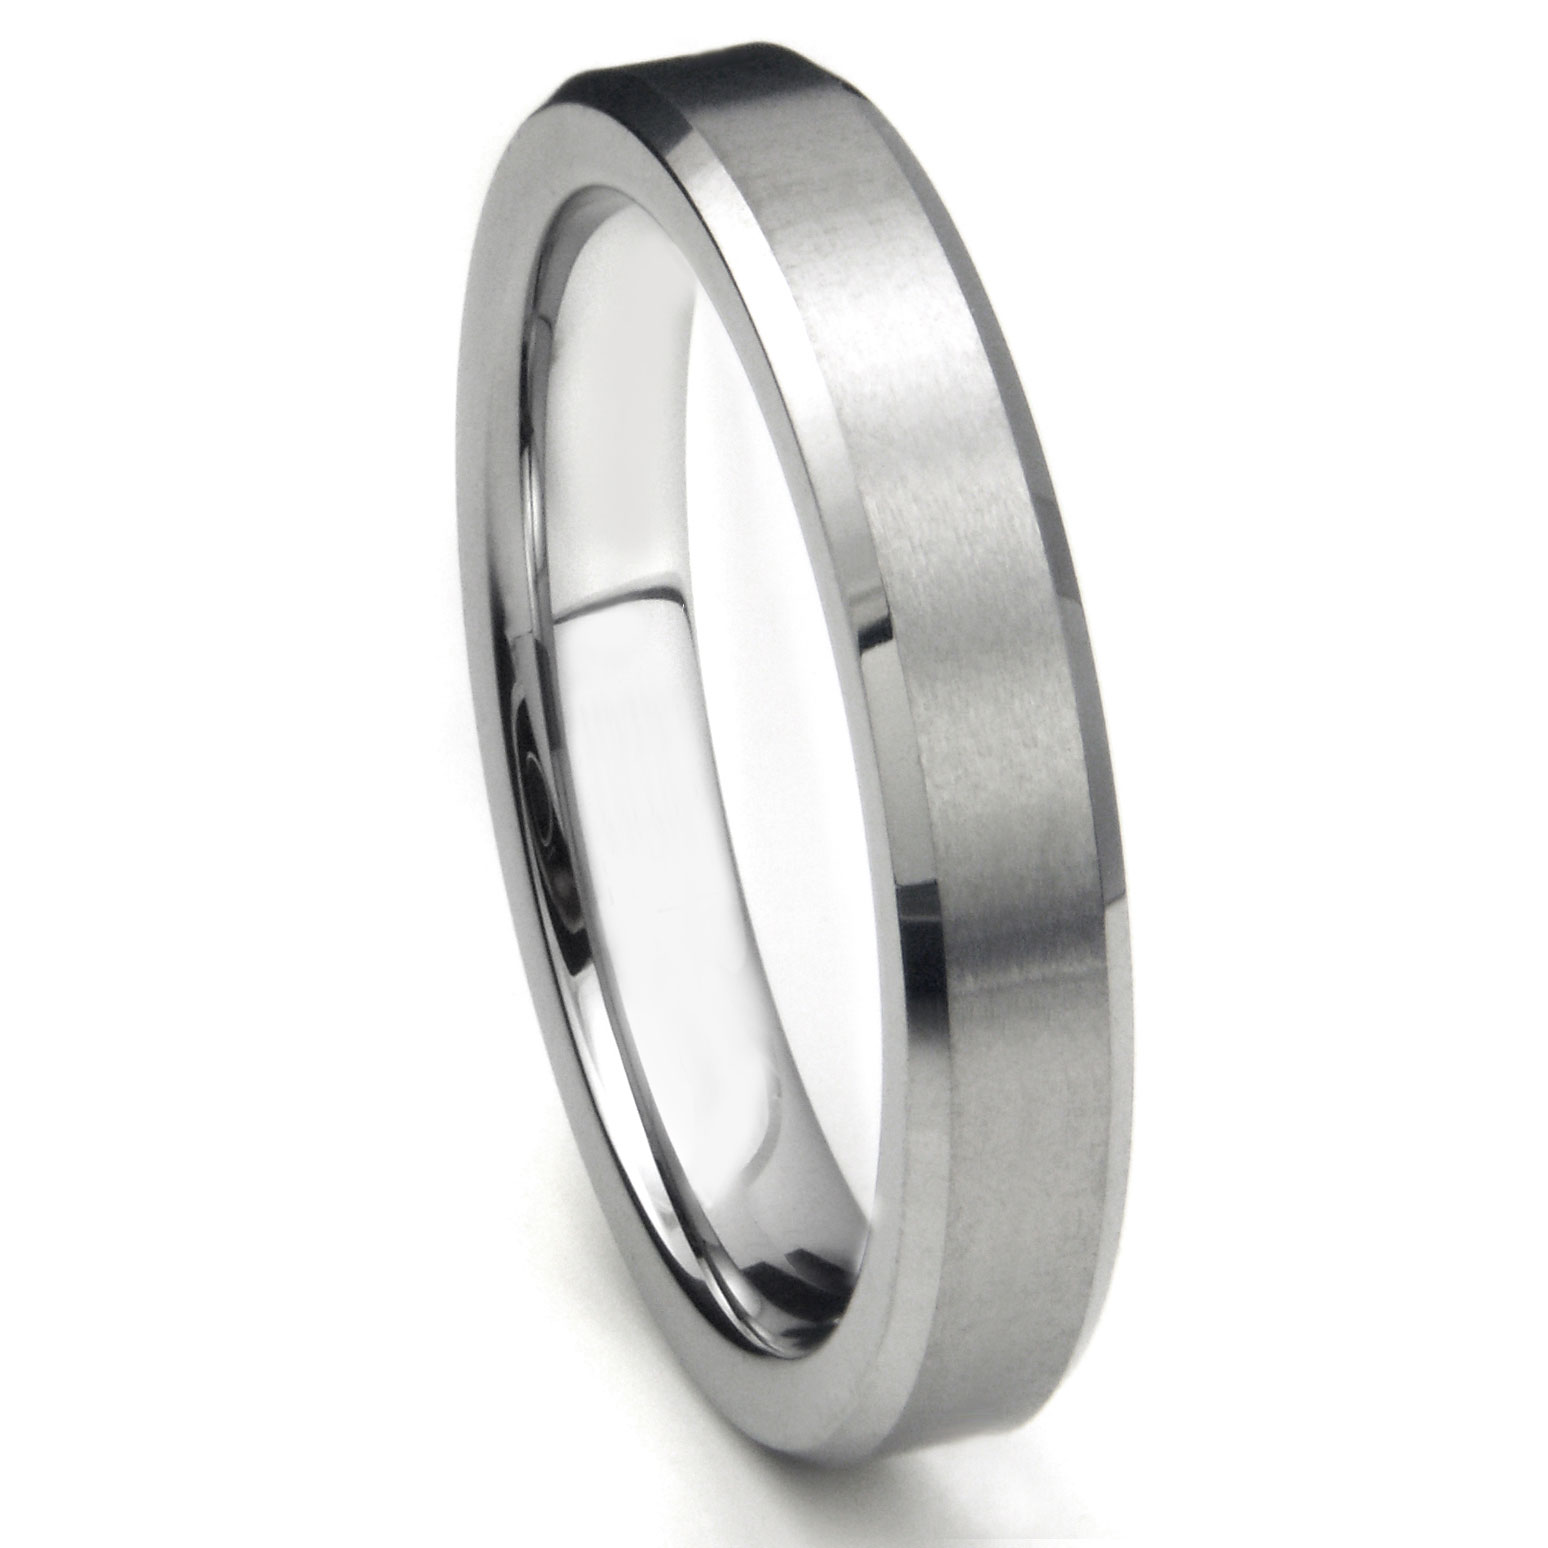 p tone your personalized bands find silver rings tungsten two black easily item